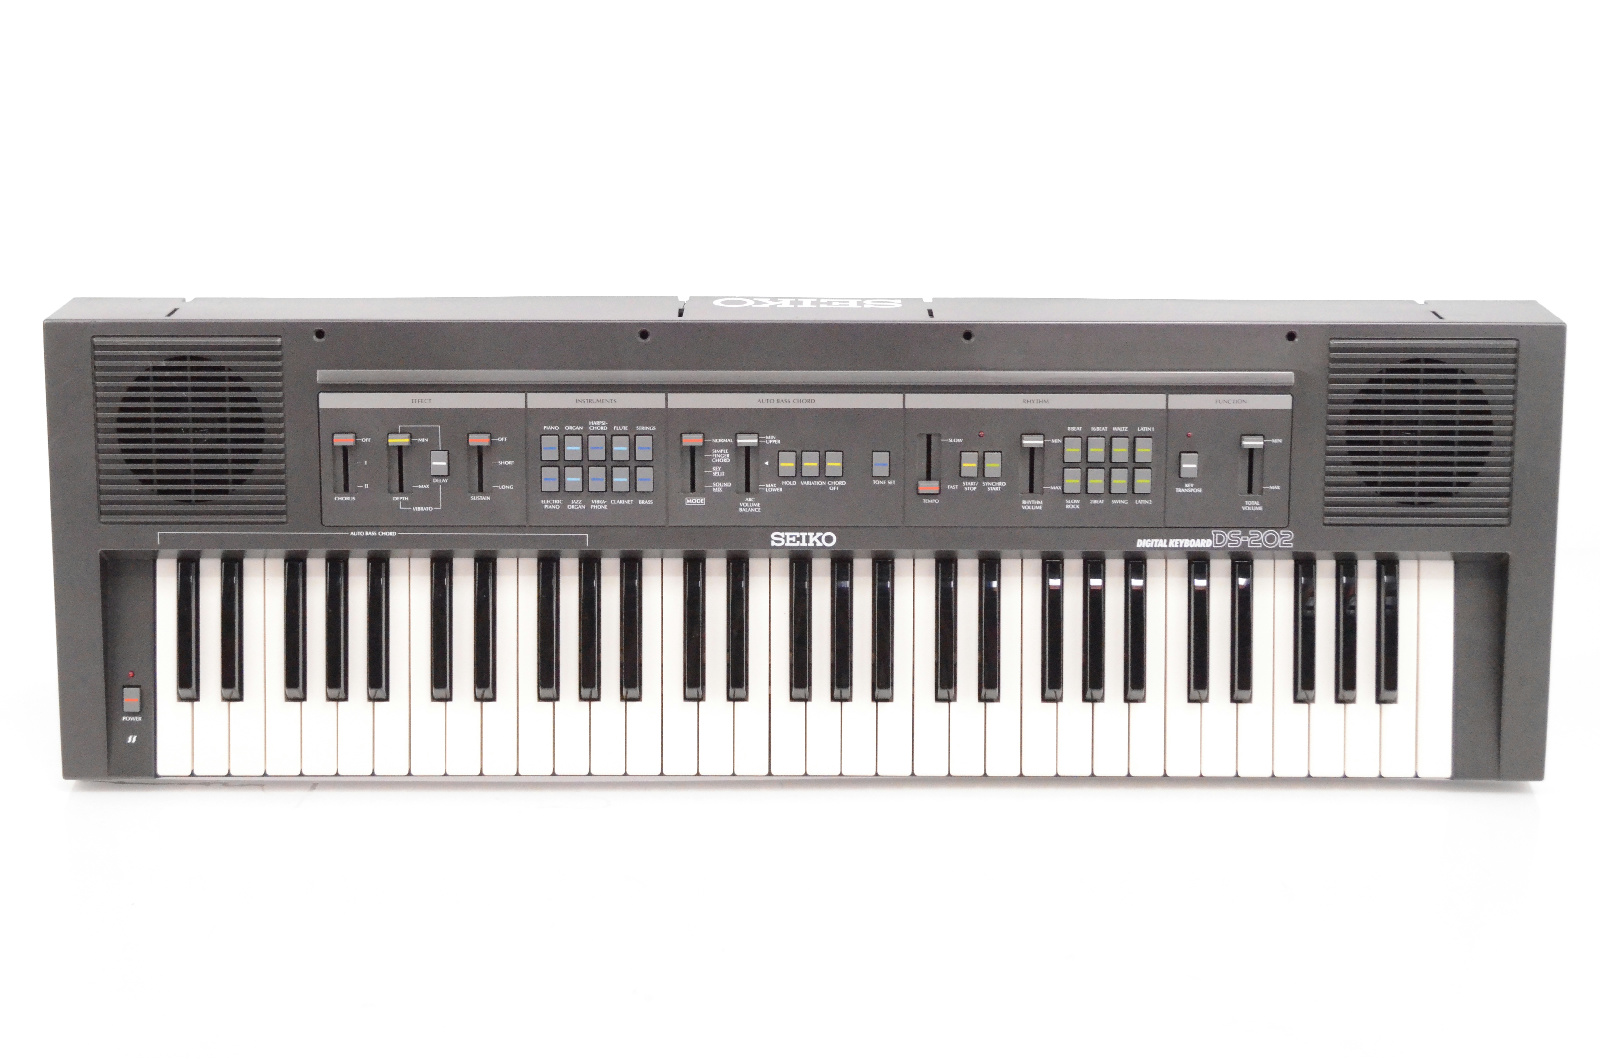 Seiko DS-202 Digital Keyboard 61 Key Note Piano DS202 #31766